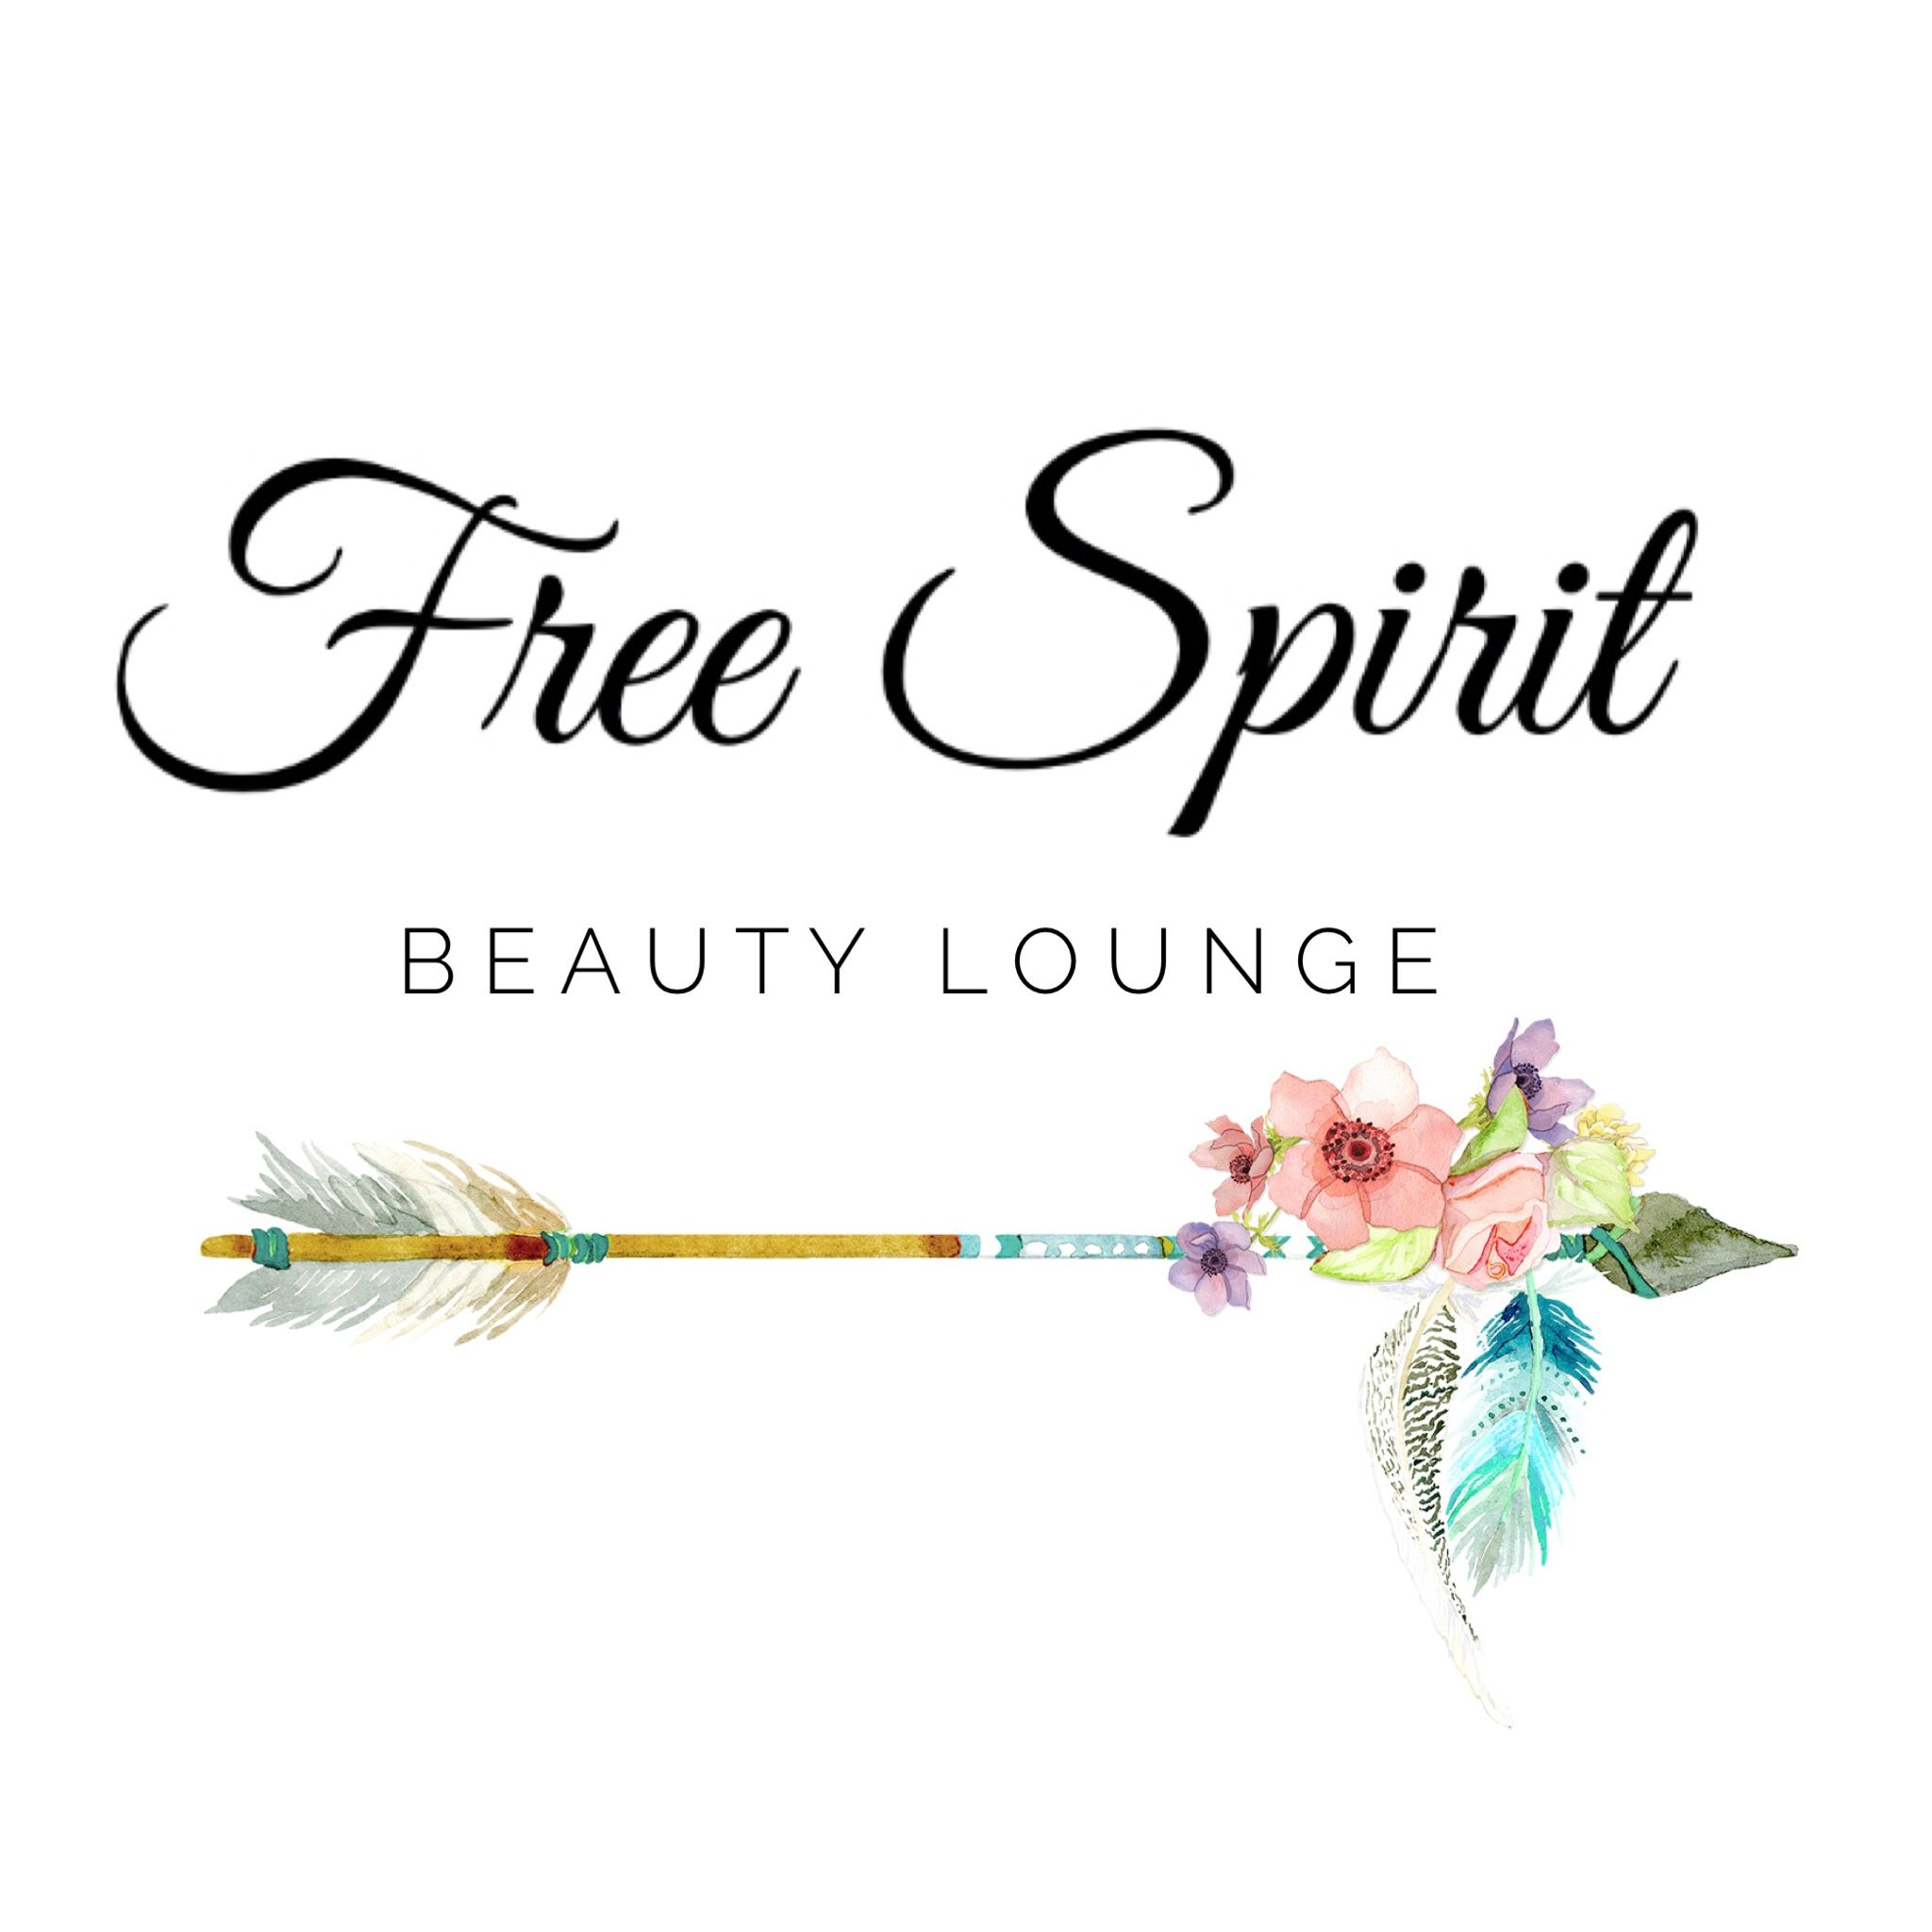 Free Spirit Beauty Lounge In Modesto Ca Vagaro Salon Spa